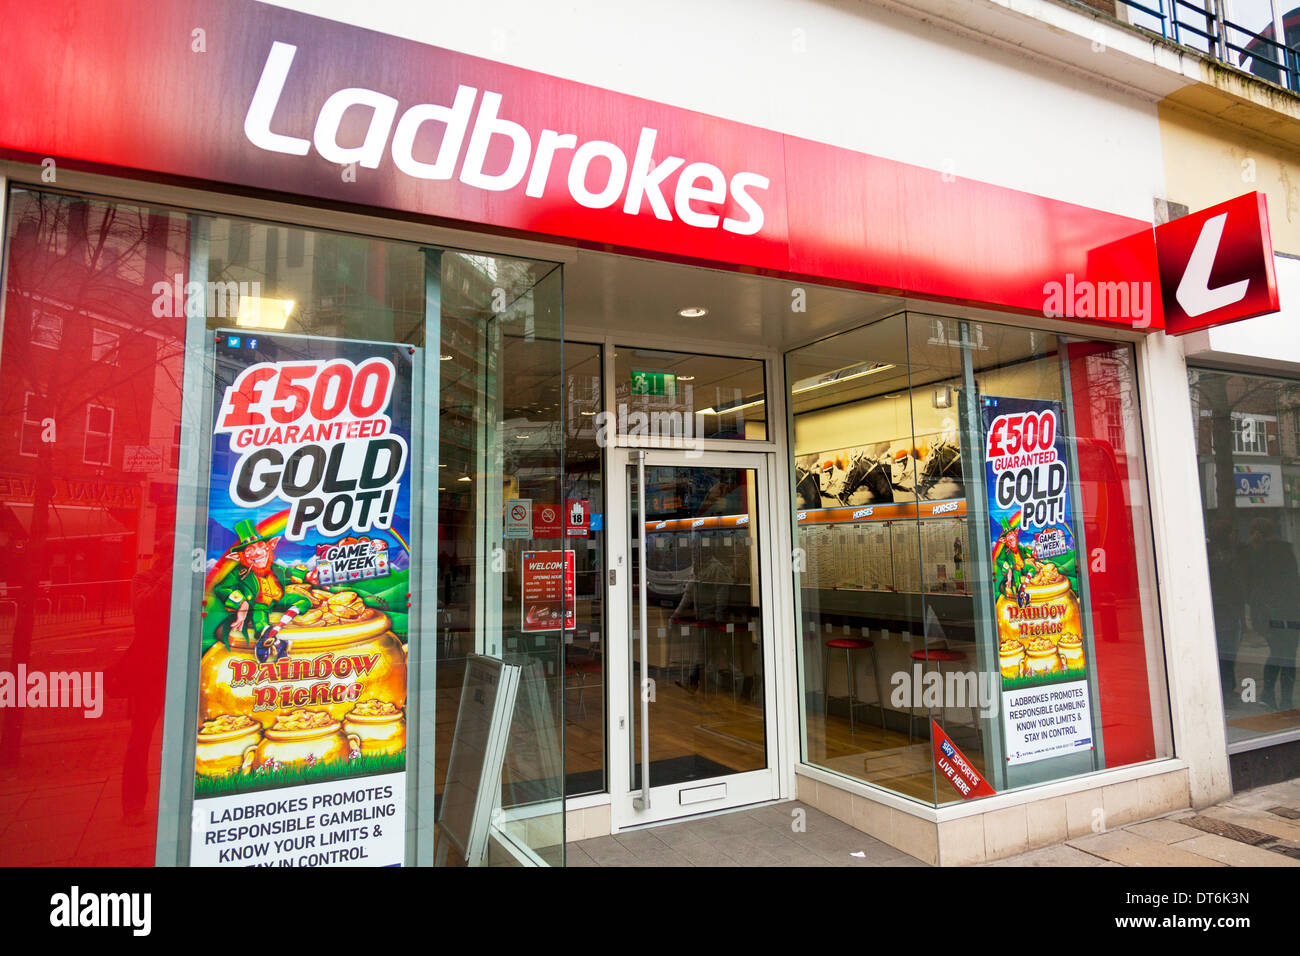 Ladbrokes betting bookie bookies shop front facade building Kingston upon Hull, East Riding, Yorkshire, UK, England GB - Stock Image